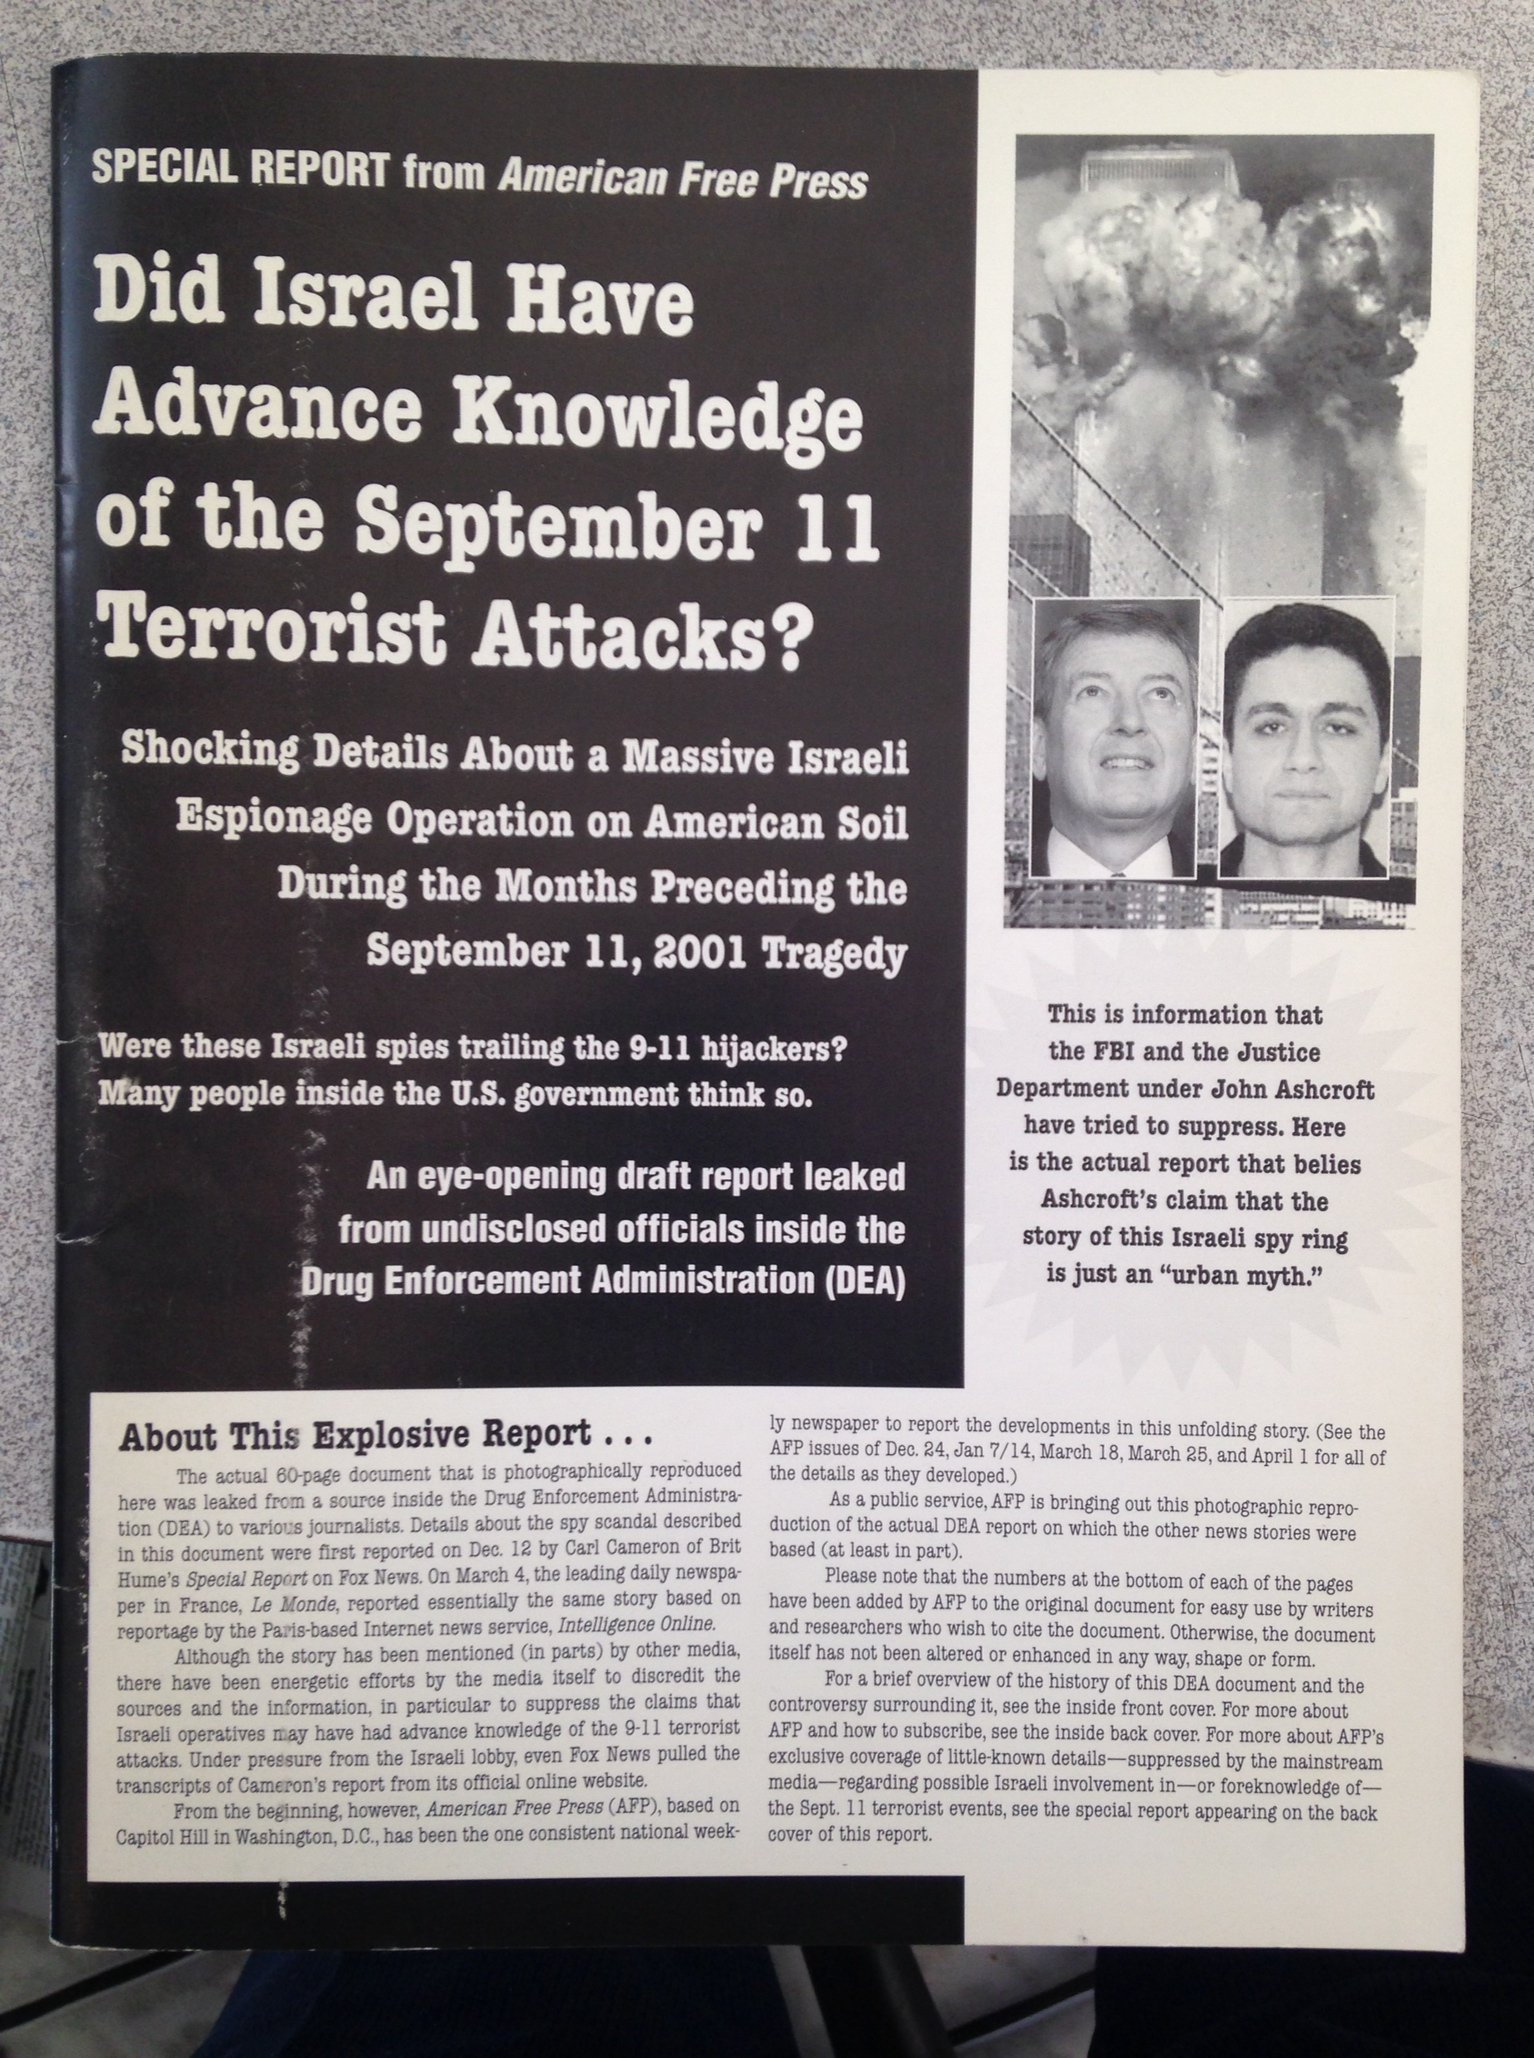 Did Israel Have Advance Knowledge of the September 11 Terrorist Attacks?, American Free Press